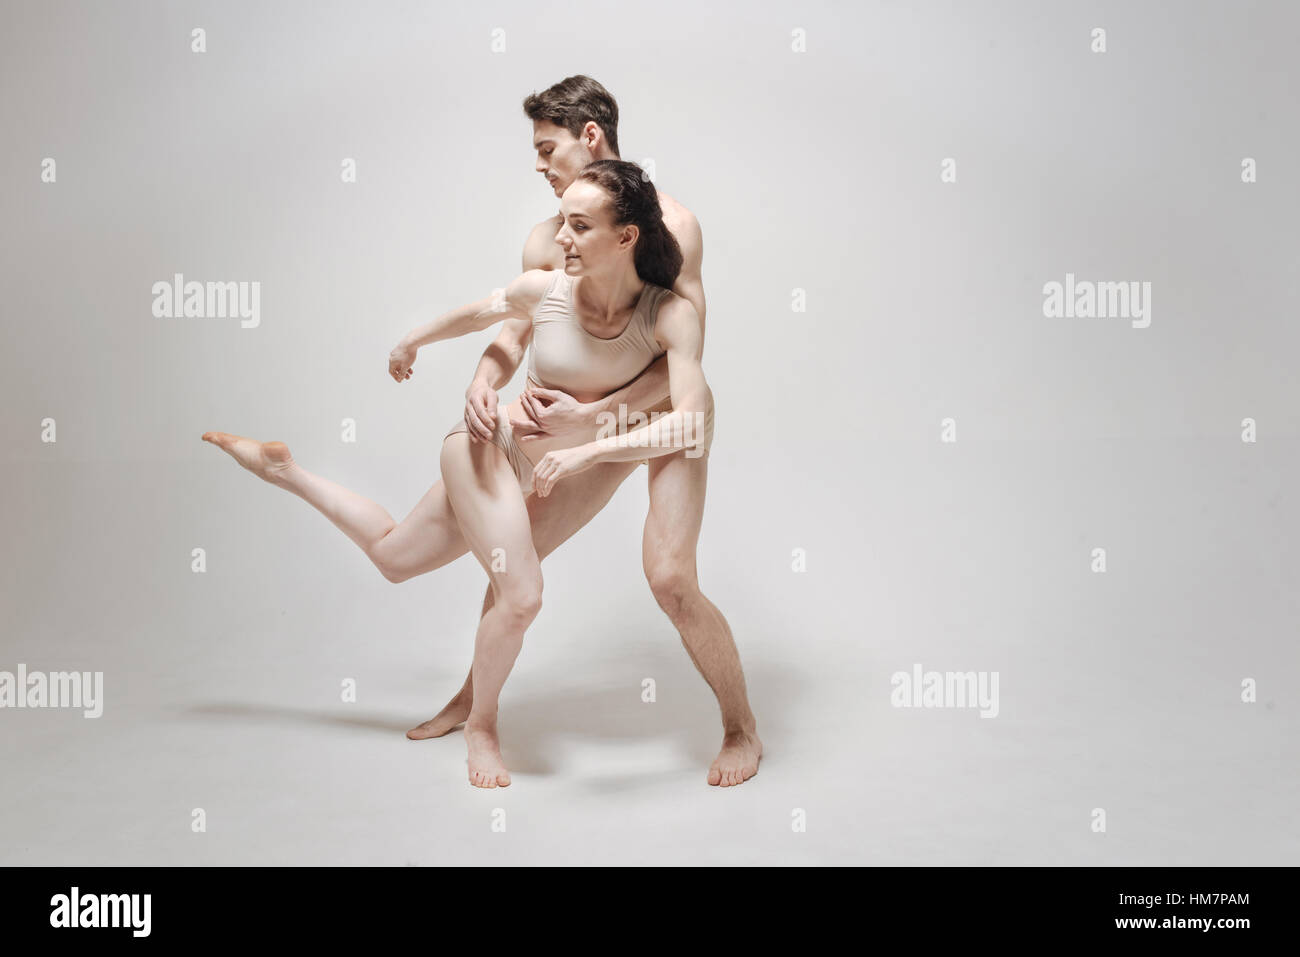 Athletic dance couple expressing their personality during the rehearsal - Stock Image